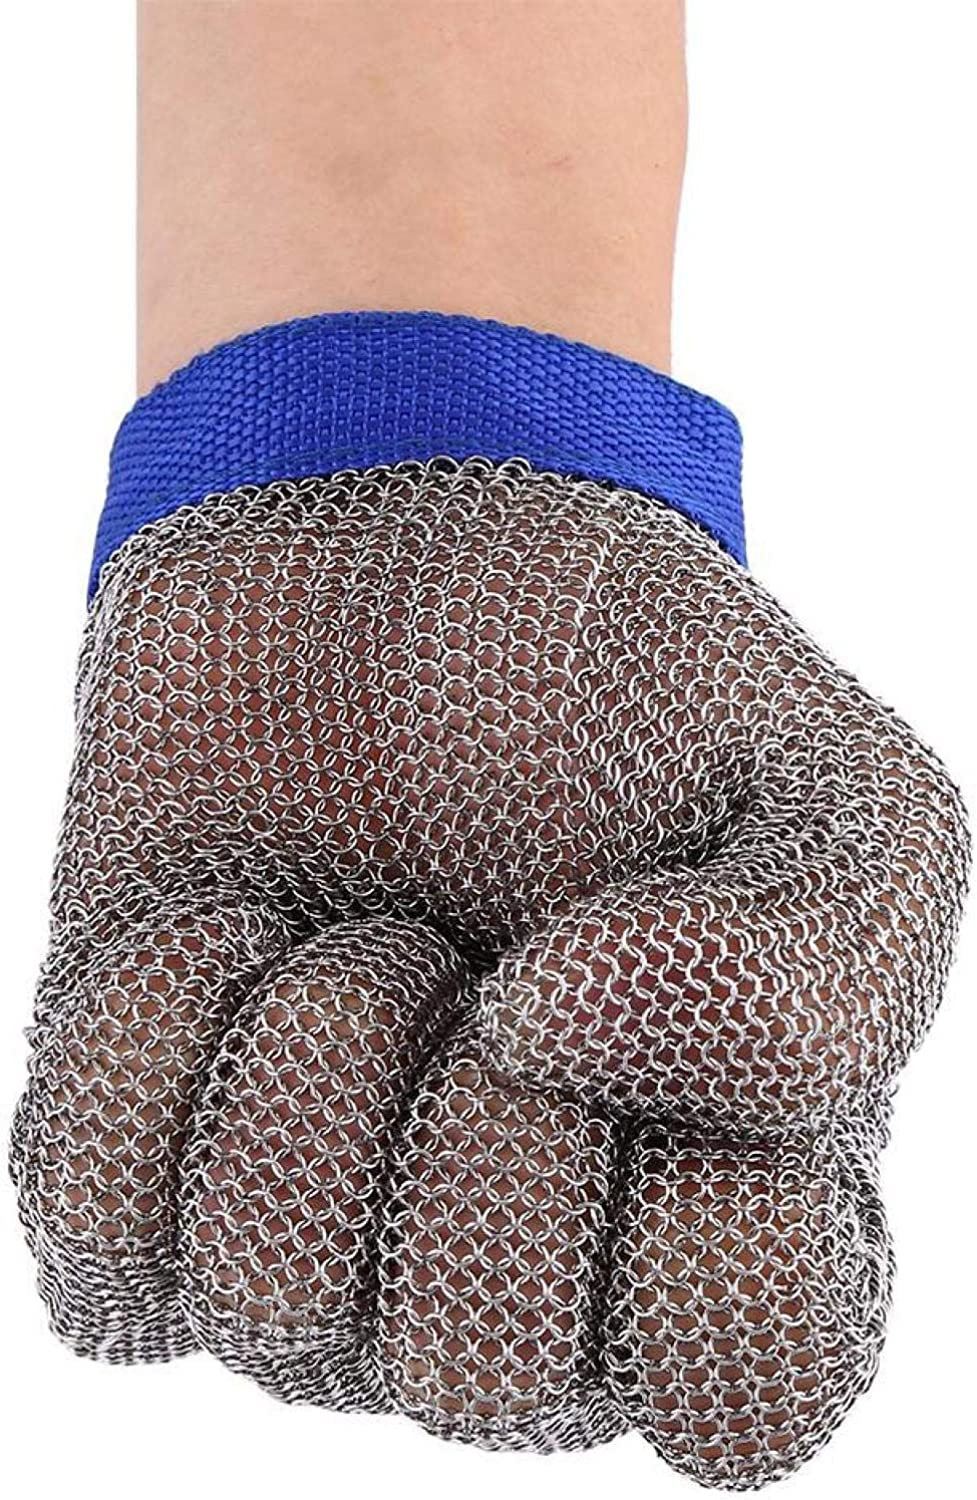 304 Stainless Ranking integrated 1st place Steel Wire Anti Cut Work Gloves Glove Excellent for Safety C